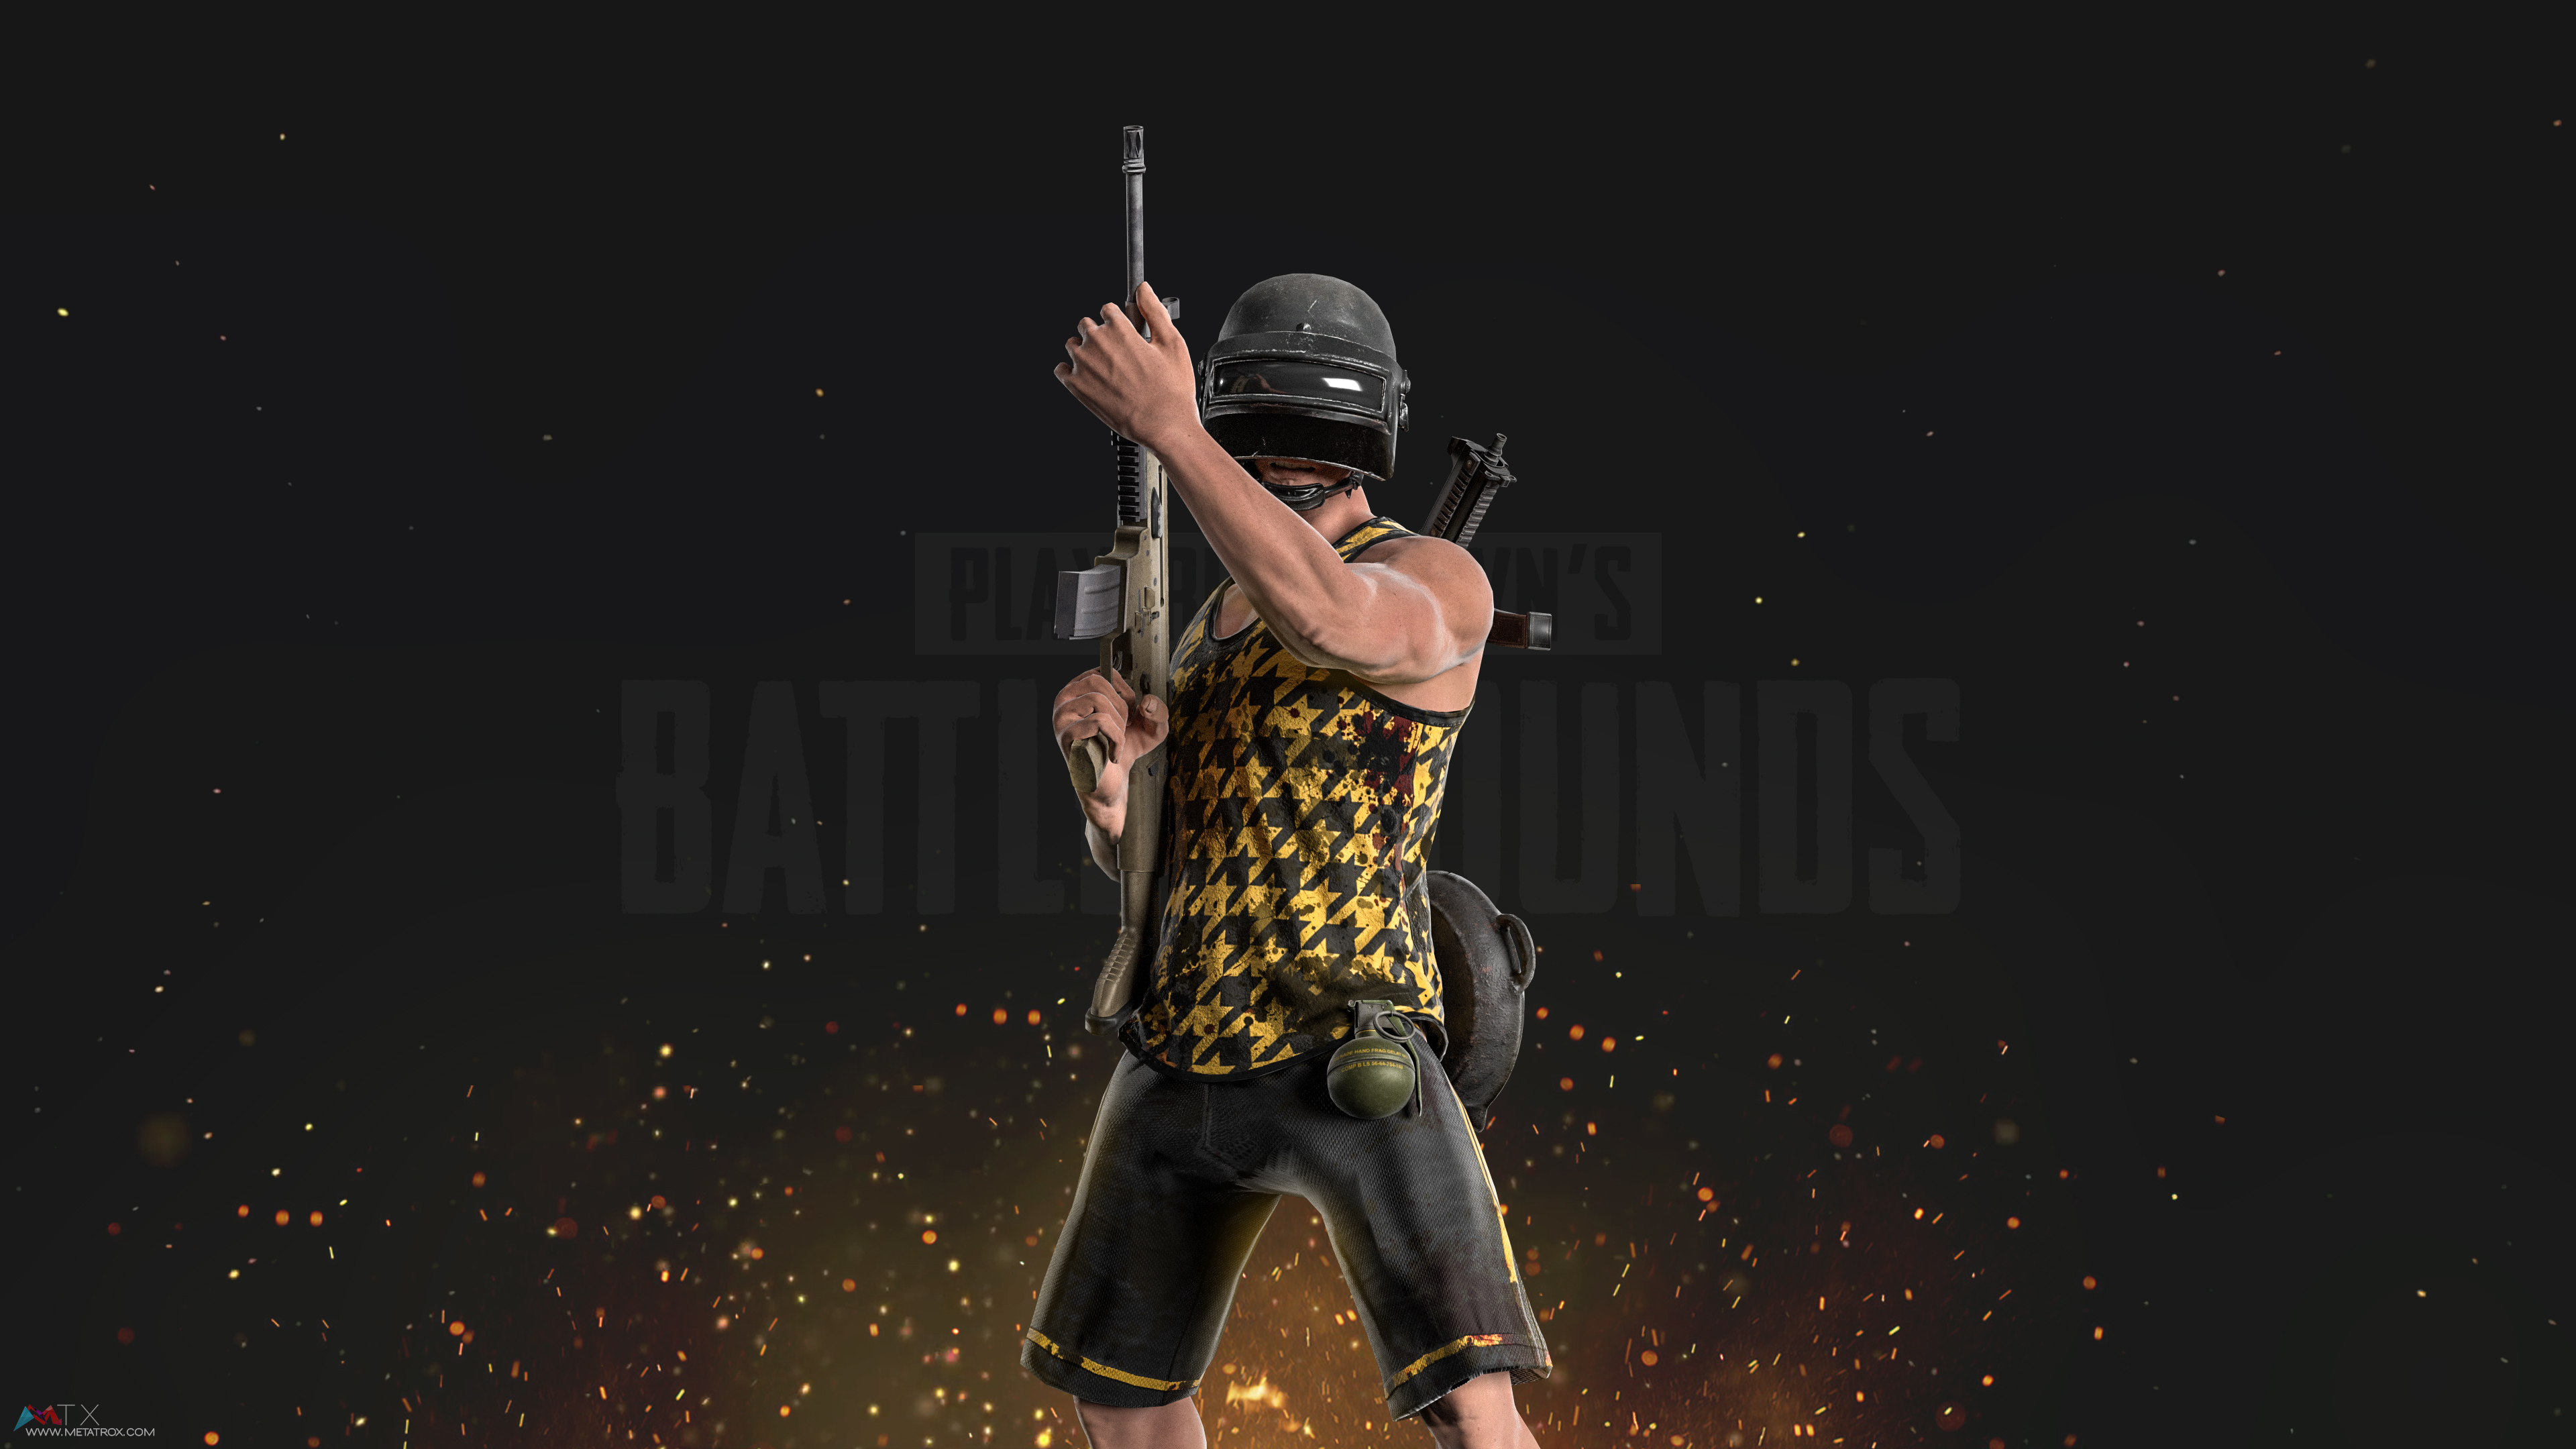 Pubg Full Hd Wallpaper Download For Pc: Pubg, HD Games, 4k Wallpapers, Images, Backgrounds, Photos